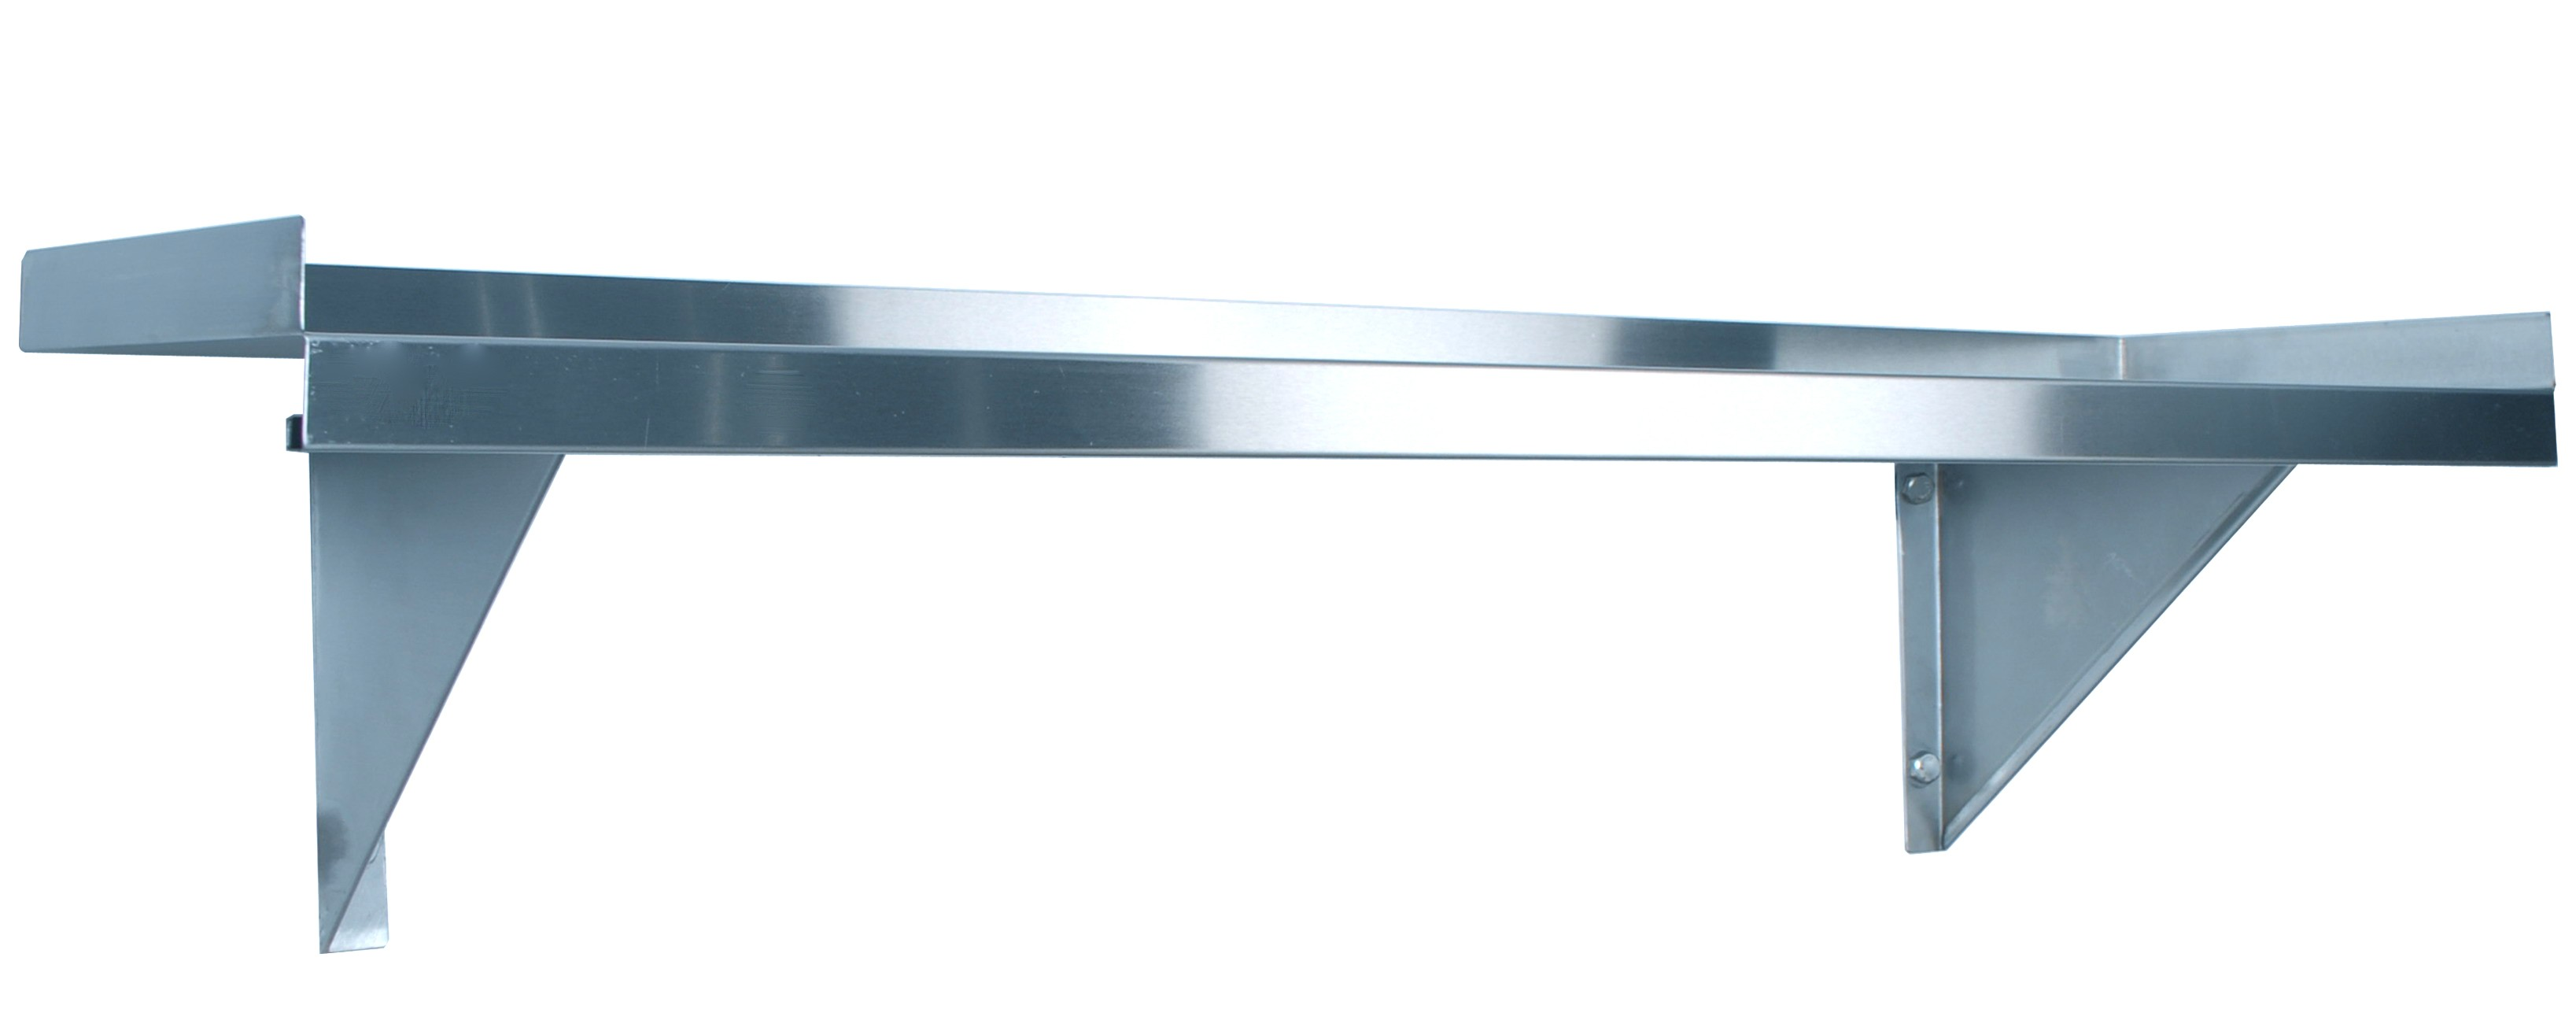 Kss 1200mm Solid Wall Shelf W Brackets Stainless Steel